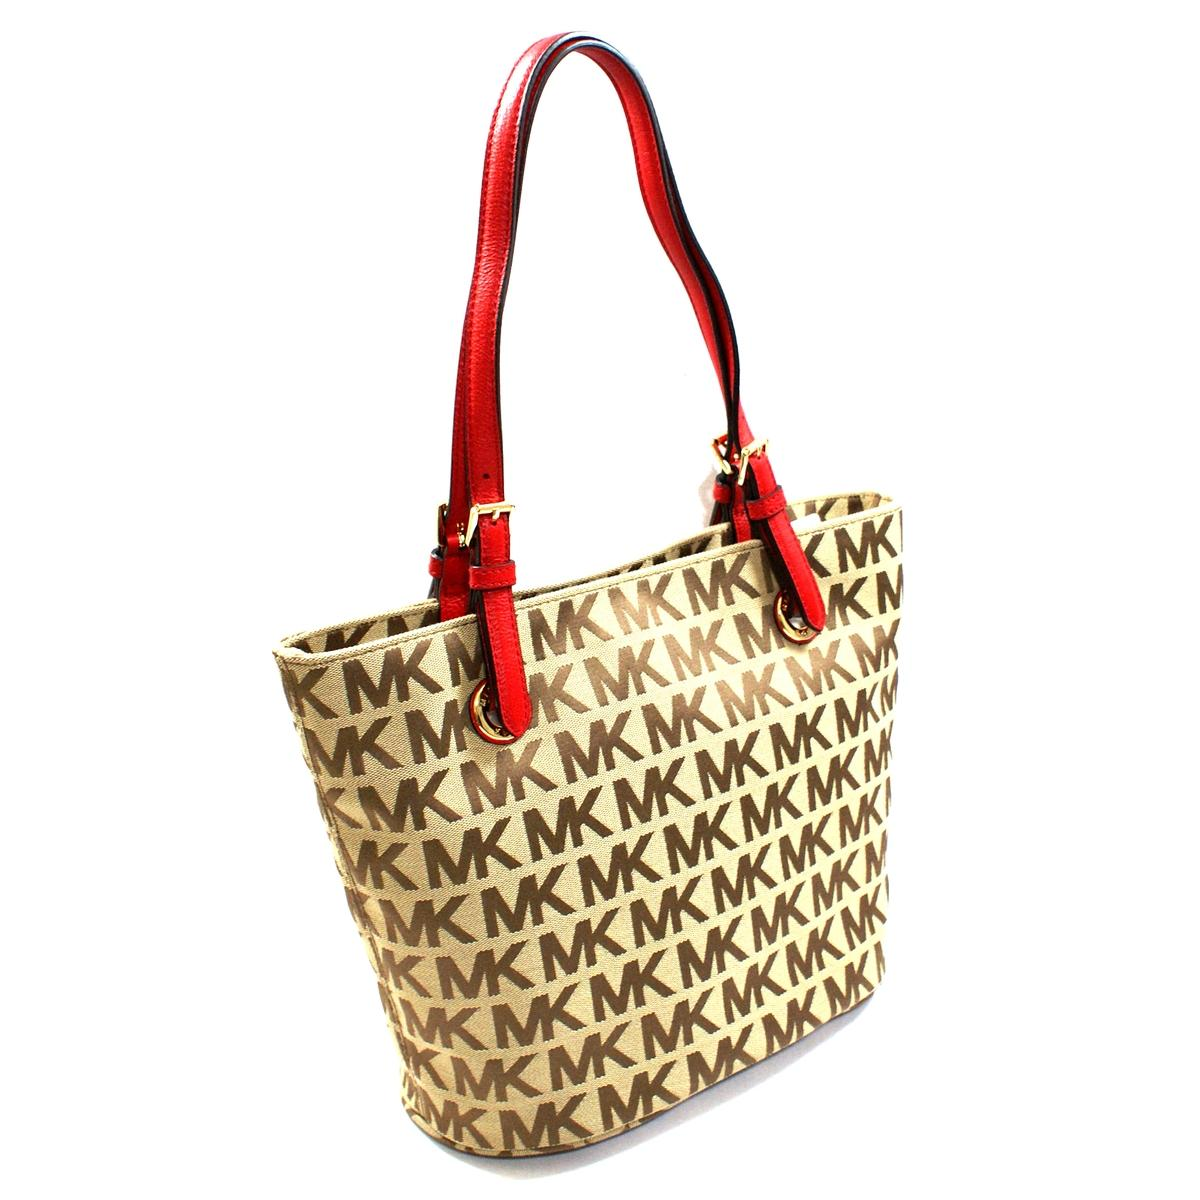 Michael Kors Outlet Clearance - Buy Cheap Michael Kors Handbags,Watches,Wallets,Bags,Purses,Shoes,Sunglasses,Accessories From Michael Kors Outlet Online Store!Shop Now with Big Discount,Free Shipping & Free Returns!